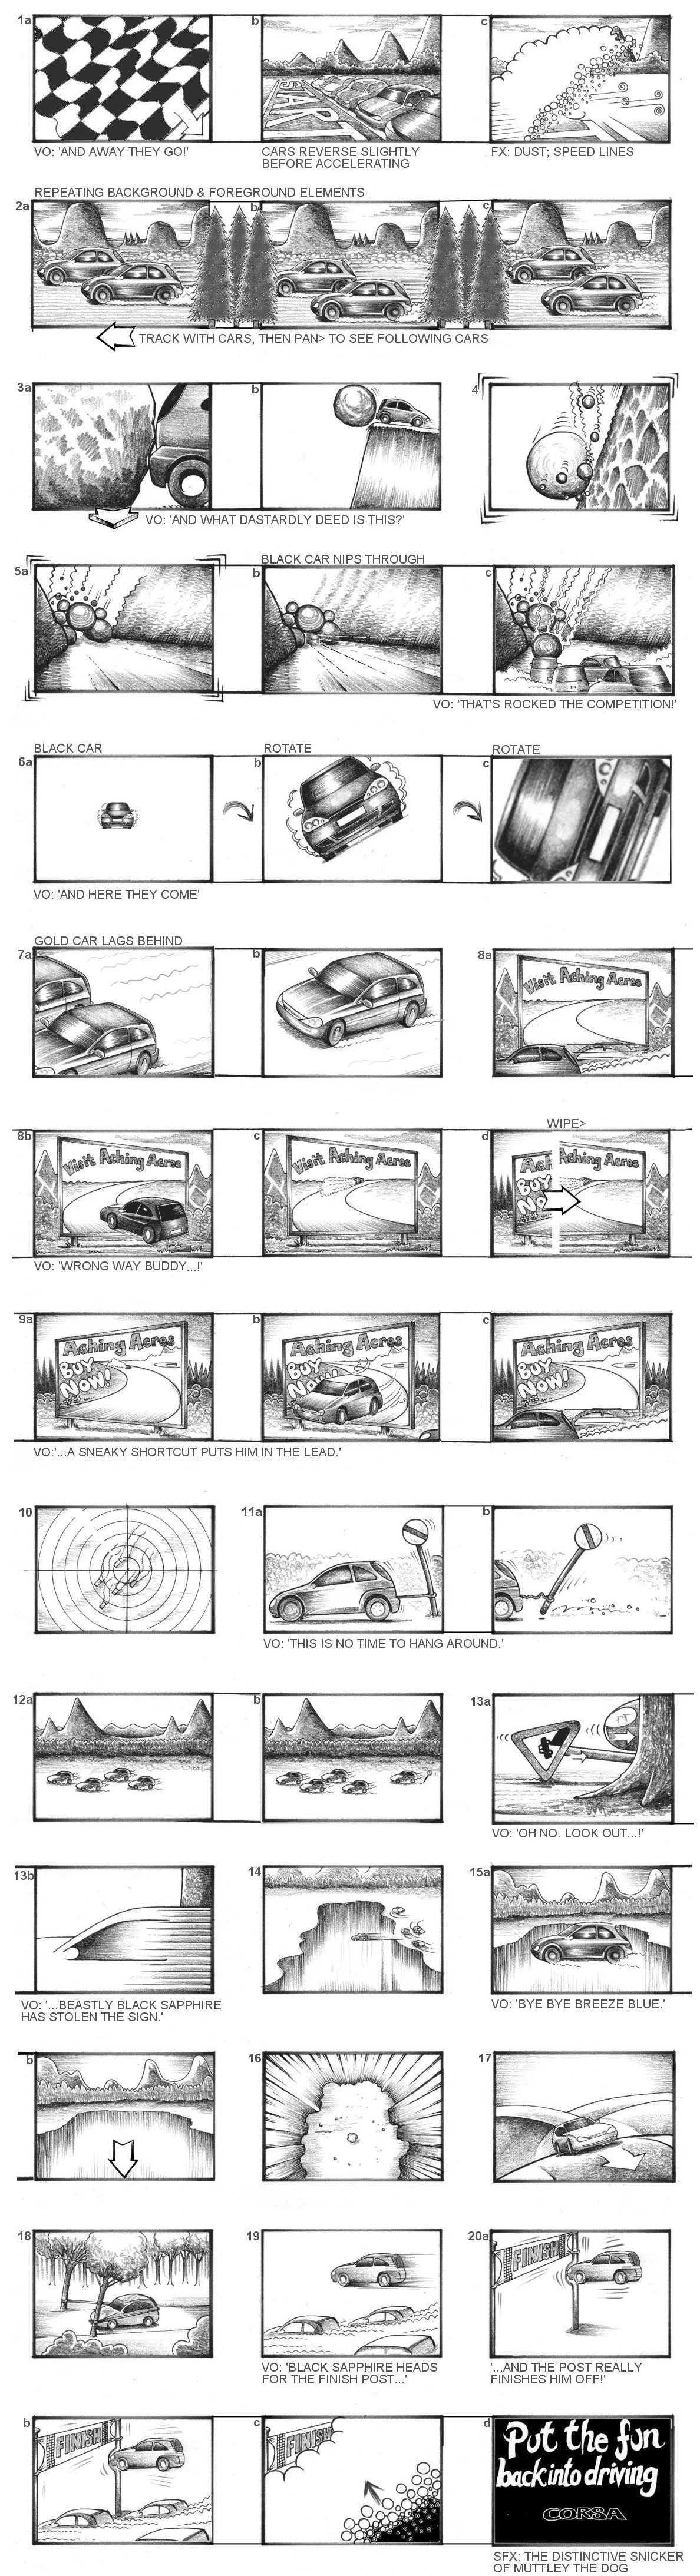 VAUXHALL CORSA 'WACKY RACES' STORYBOARDS BY ANDY SPARROW